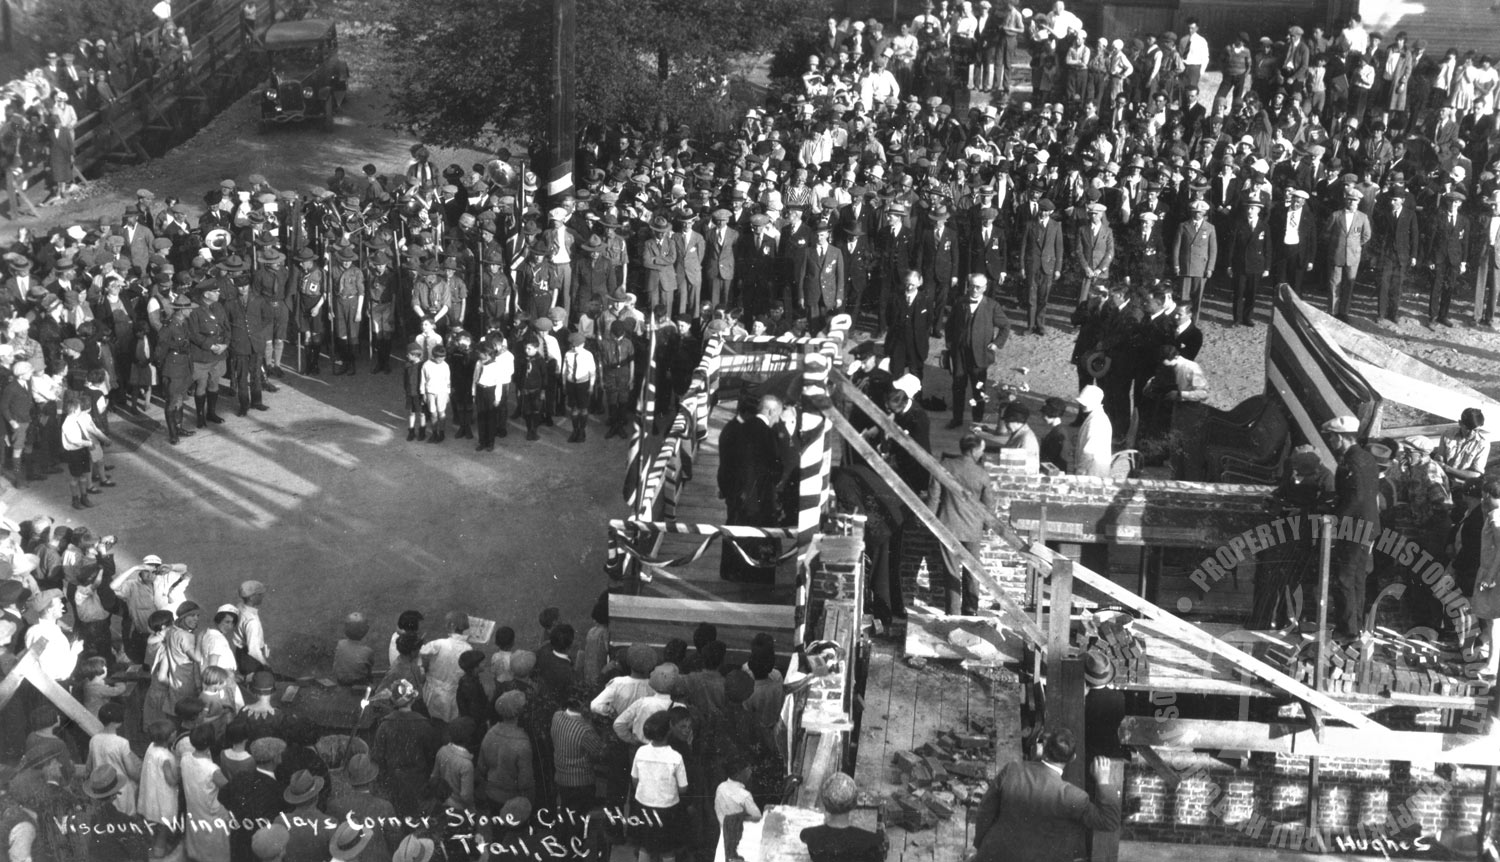 Laying the cornerstone at City Hall, 1394 Pine Avenue, Trail (Hughes) - 1928